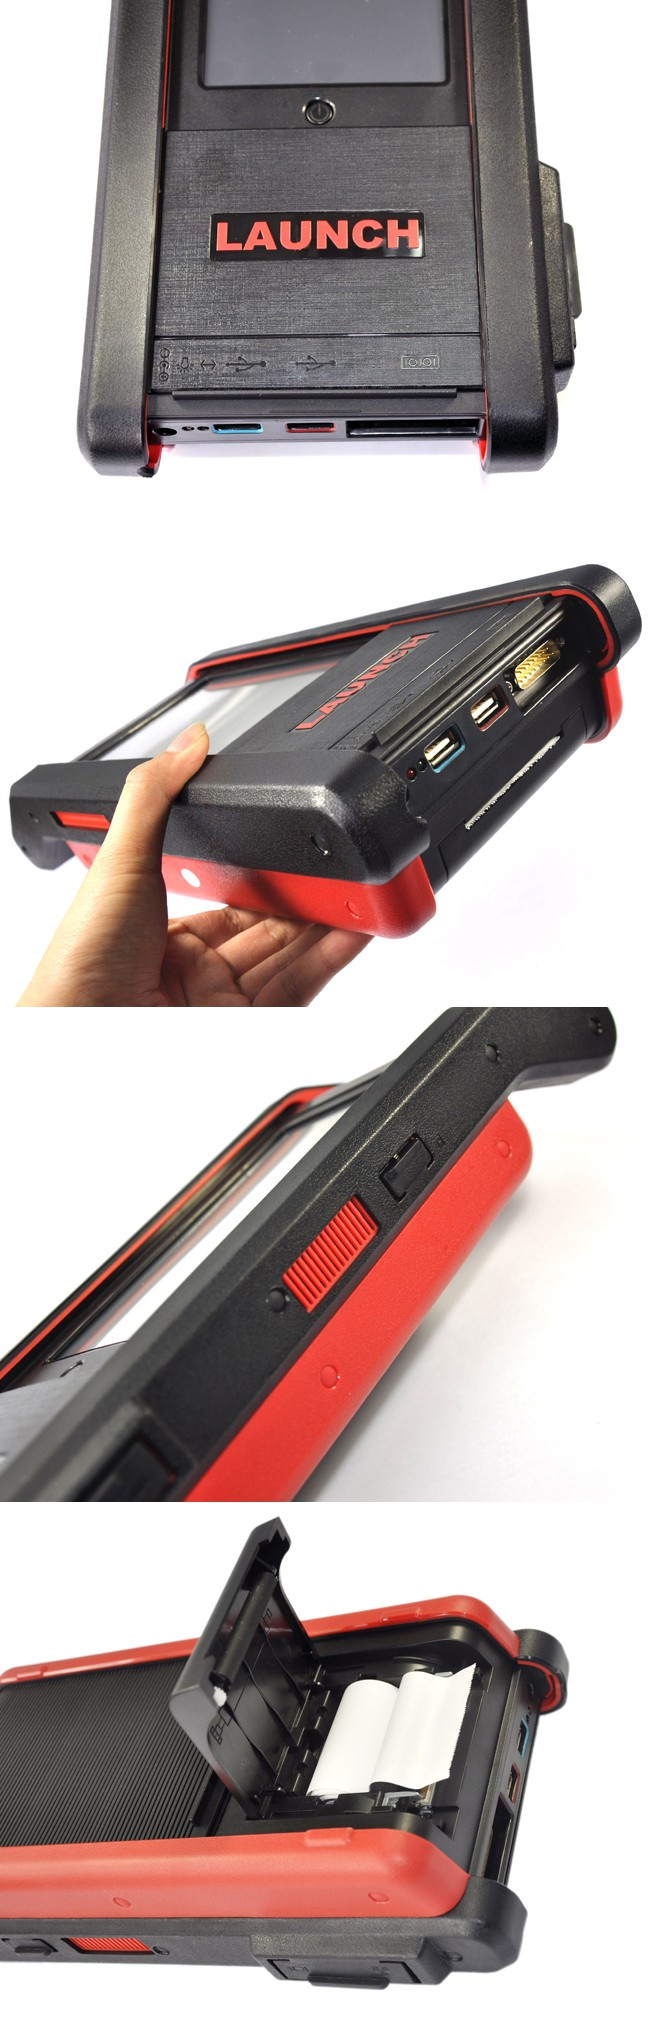 Launch X431 GDS Professional Car Diagnotic Tool Multi-functional WIFI X-431 GDS Auto Code Scanner (Diesel and Gasoline)